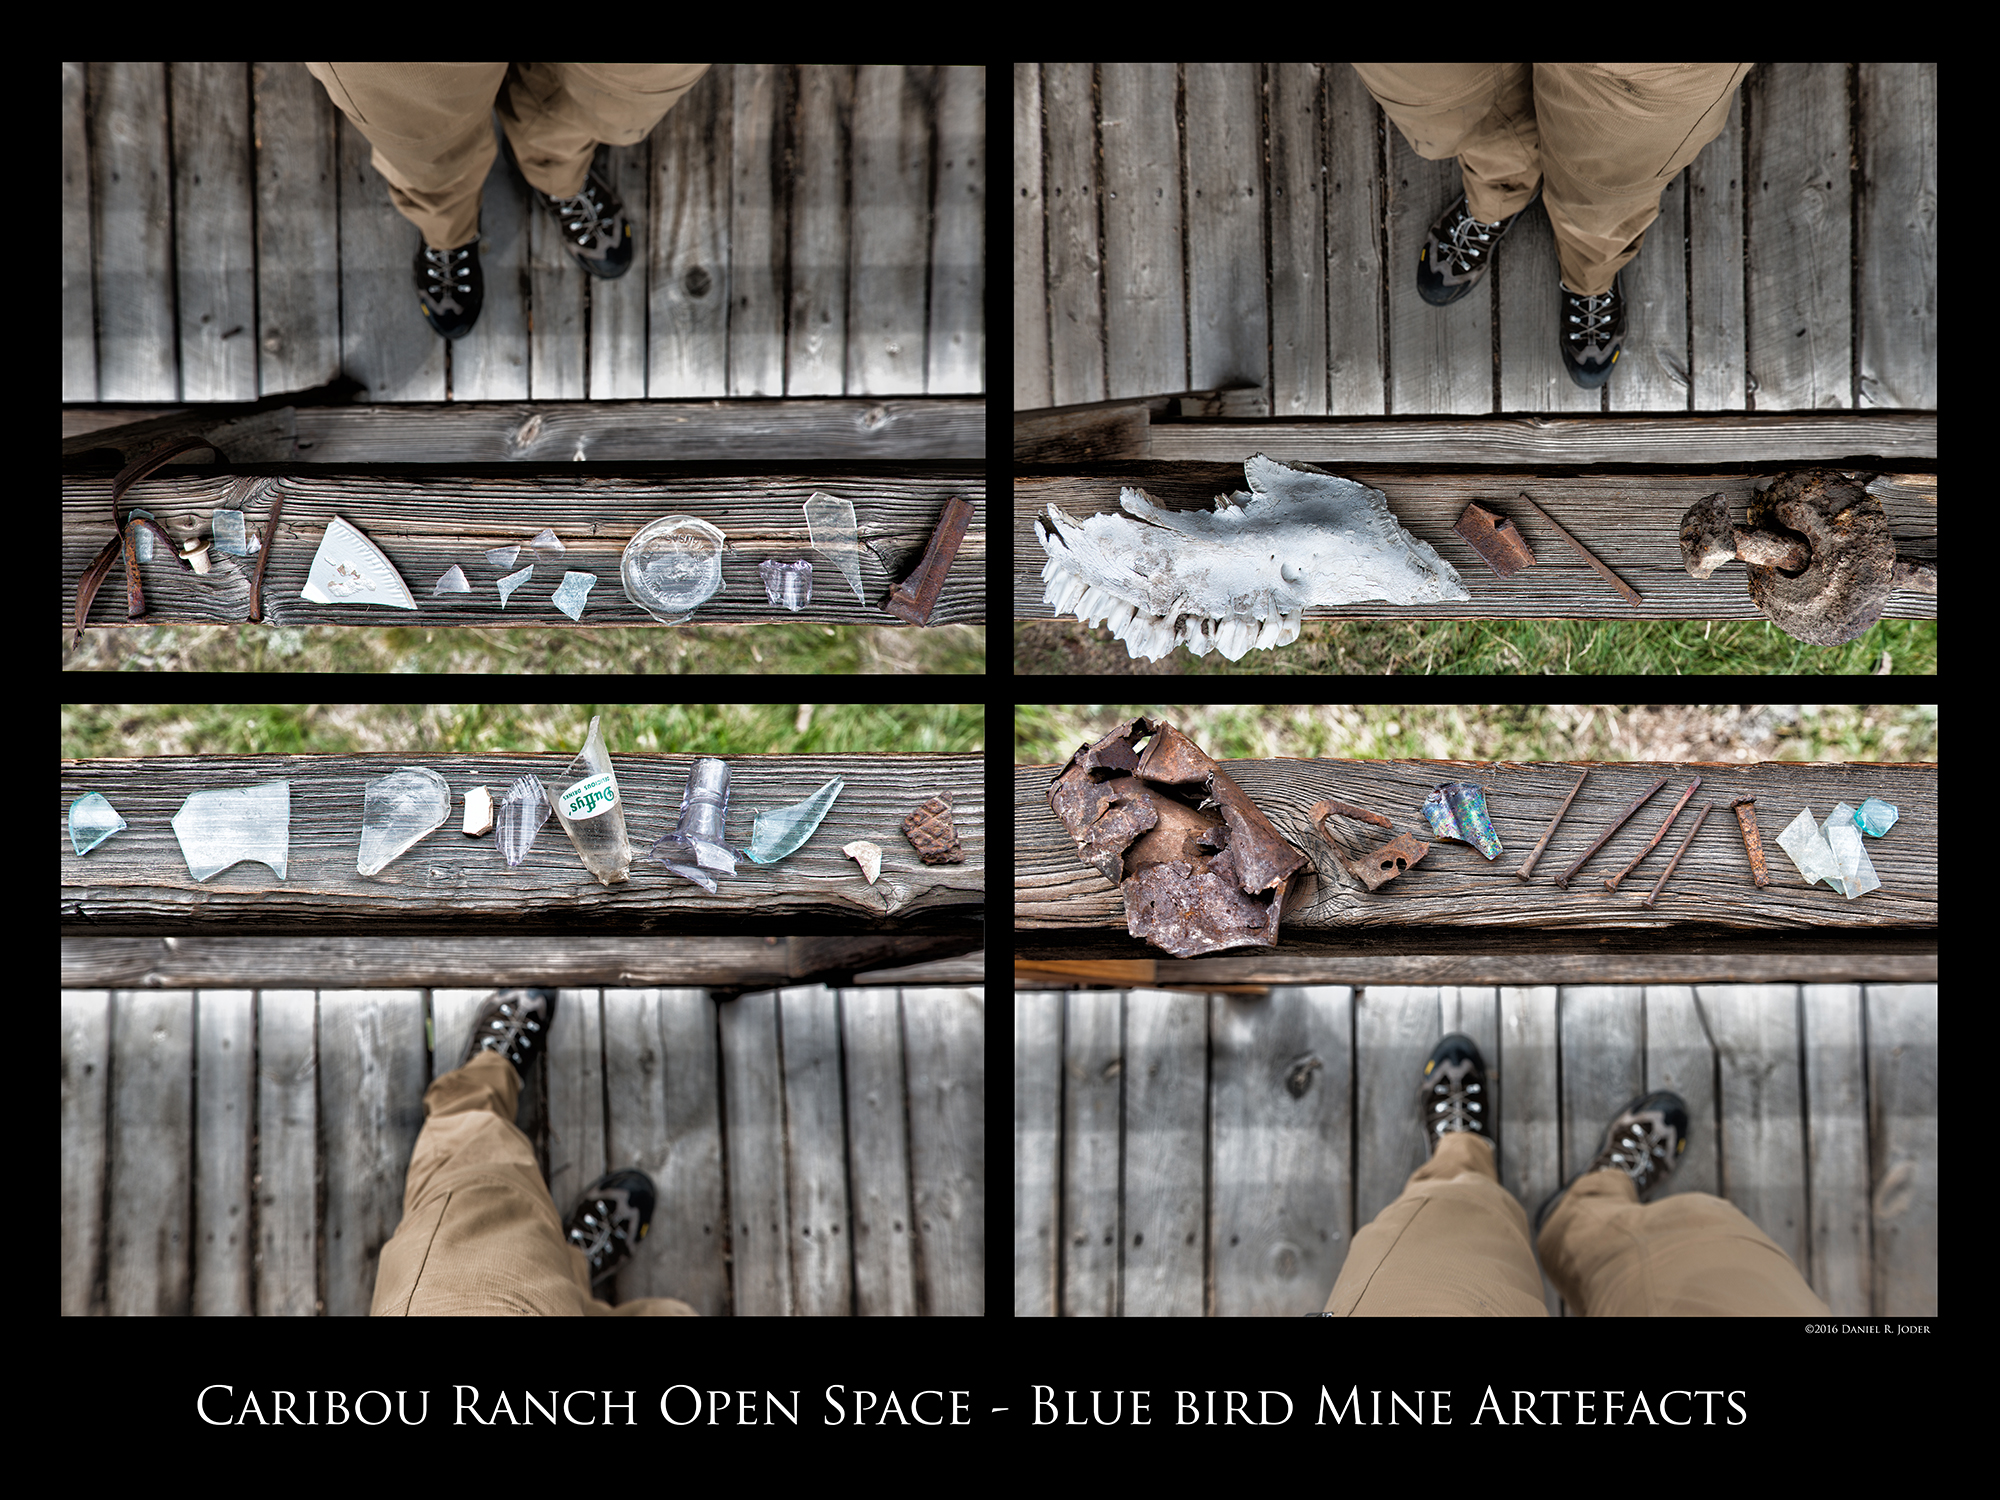 The blue bird mine at caribou ranch the photography blog for Open space in stile ranch